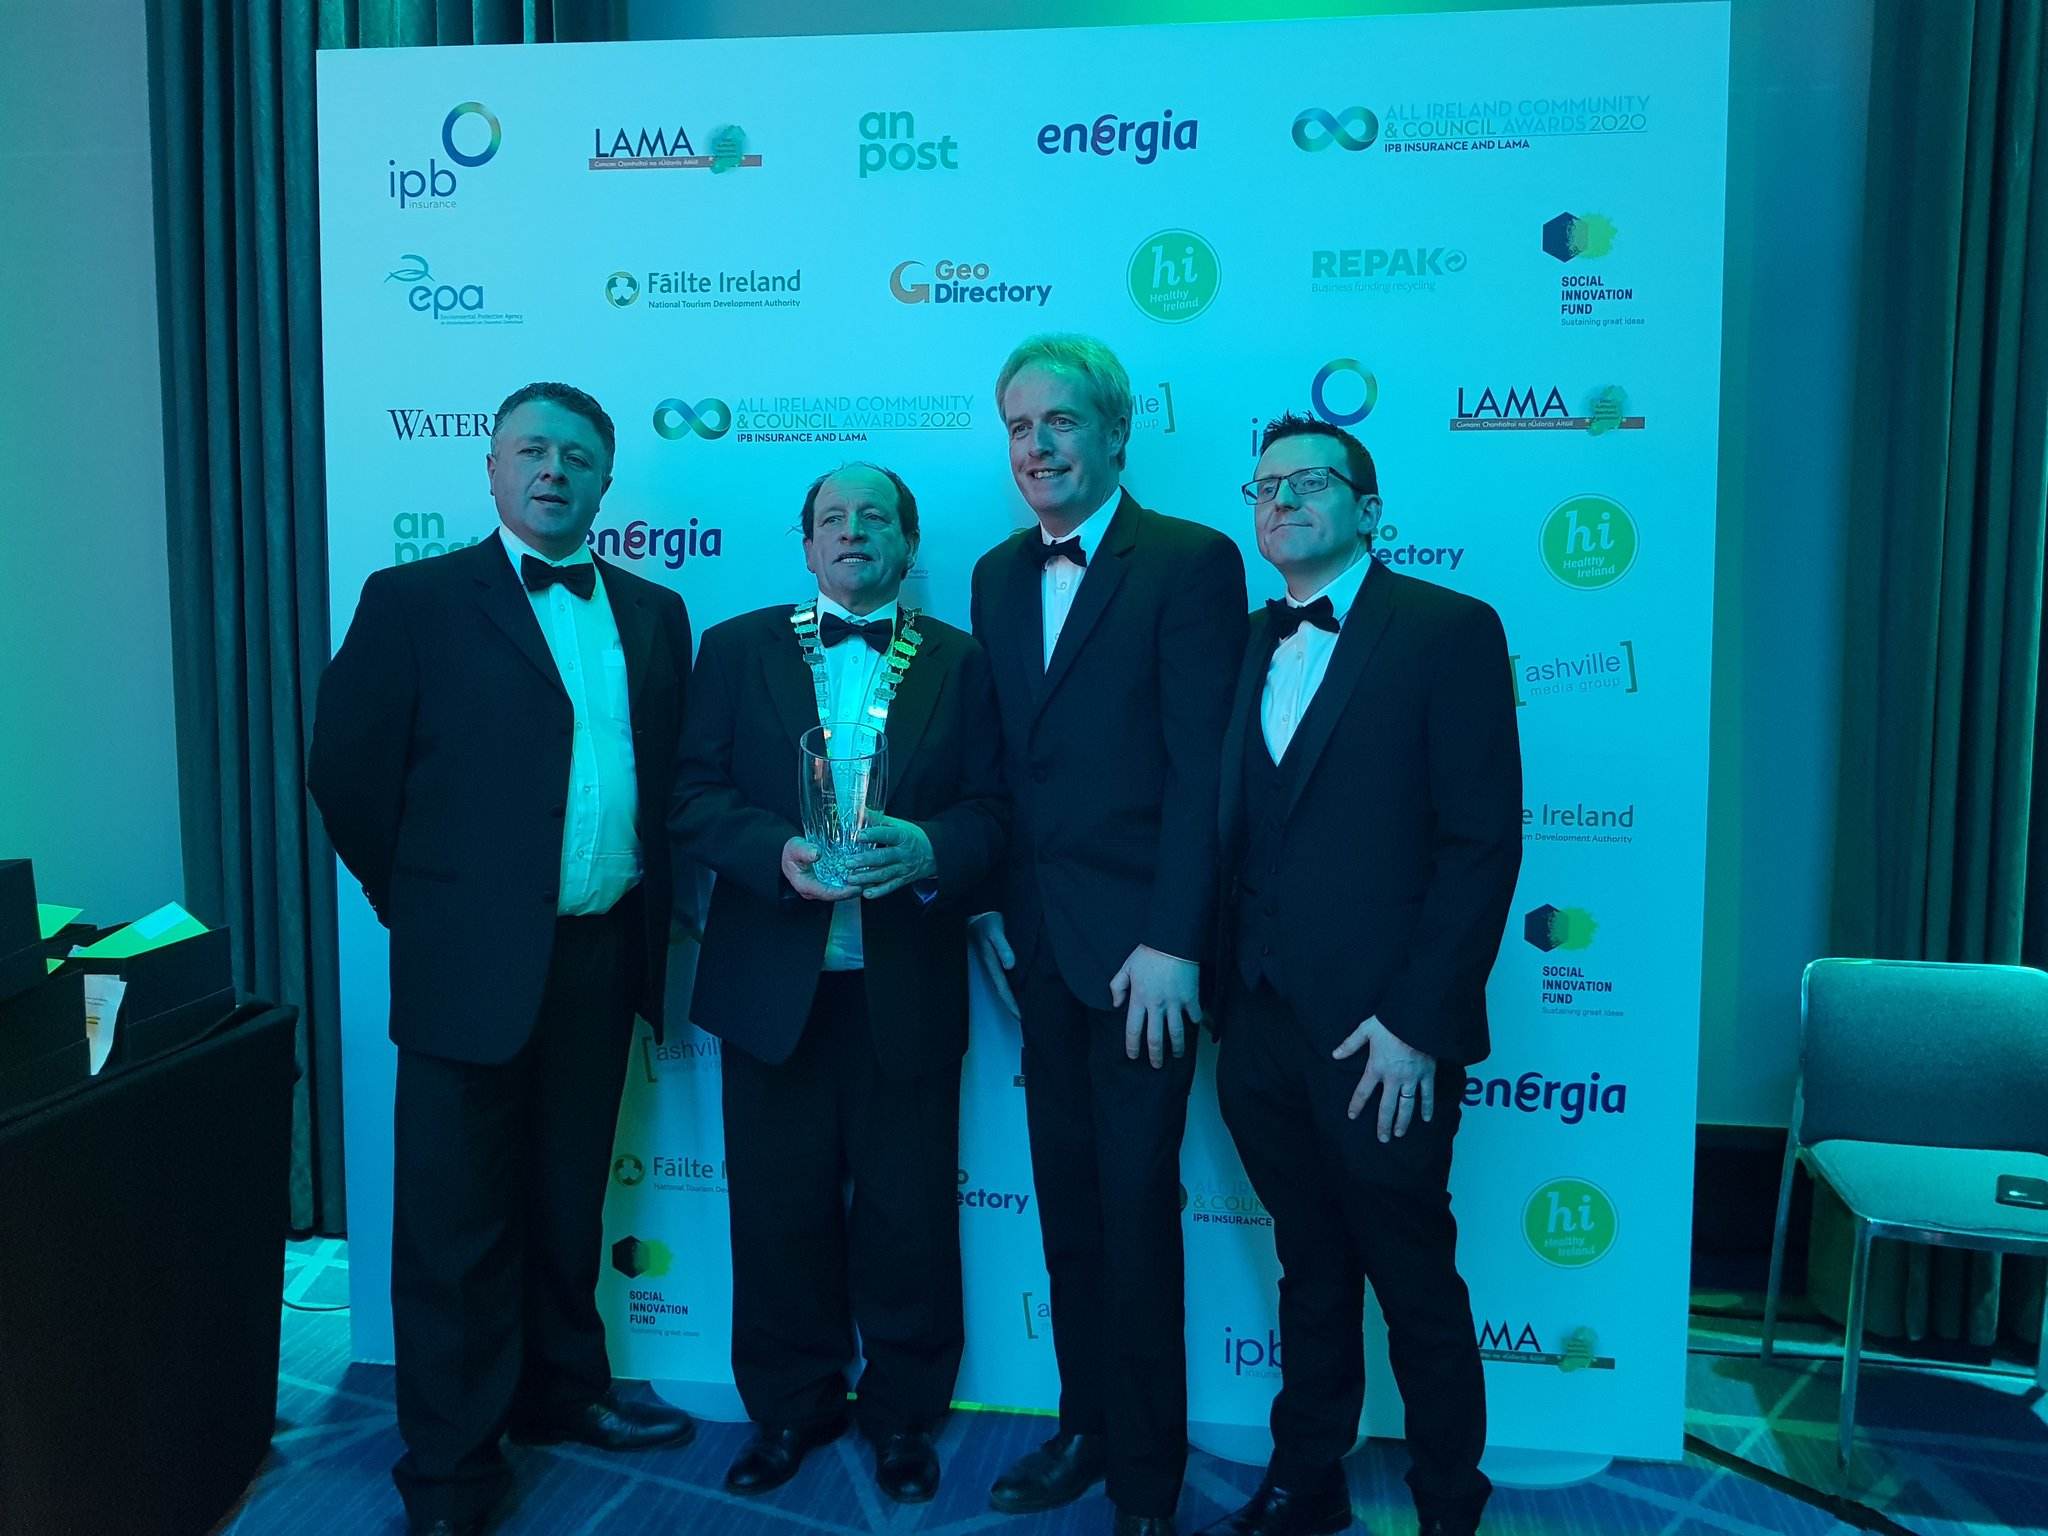 J17 National Enterprise Park Wins Innovation Award At LAMA All Ireland Community & Council Awards